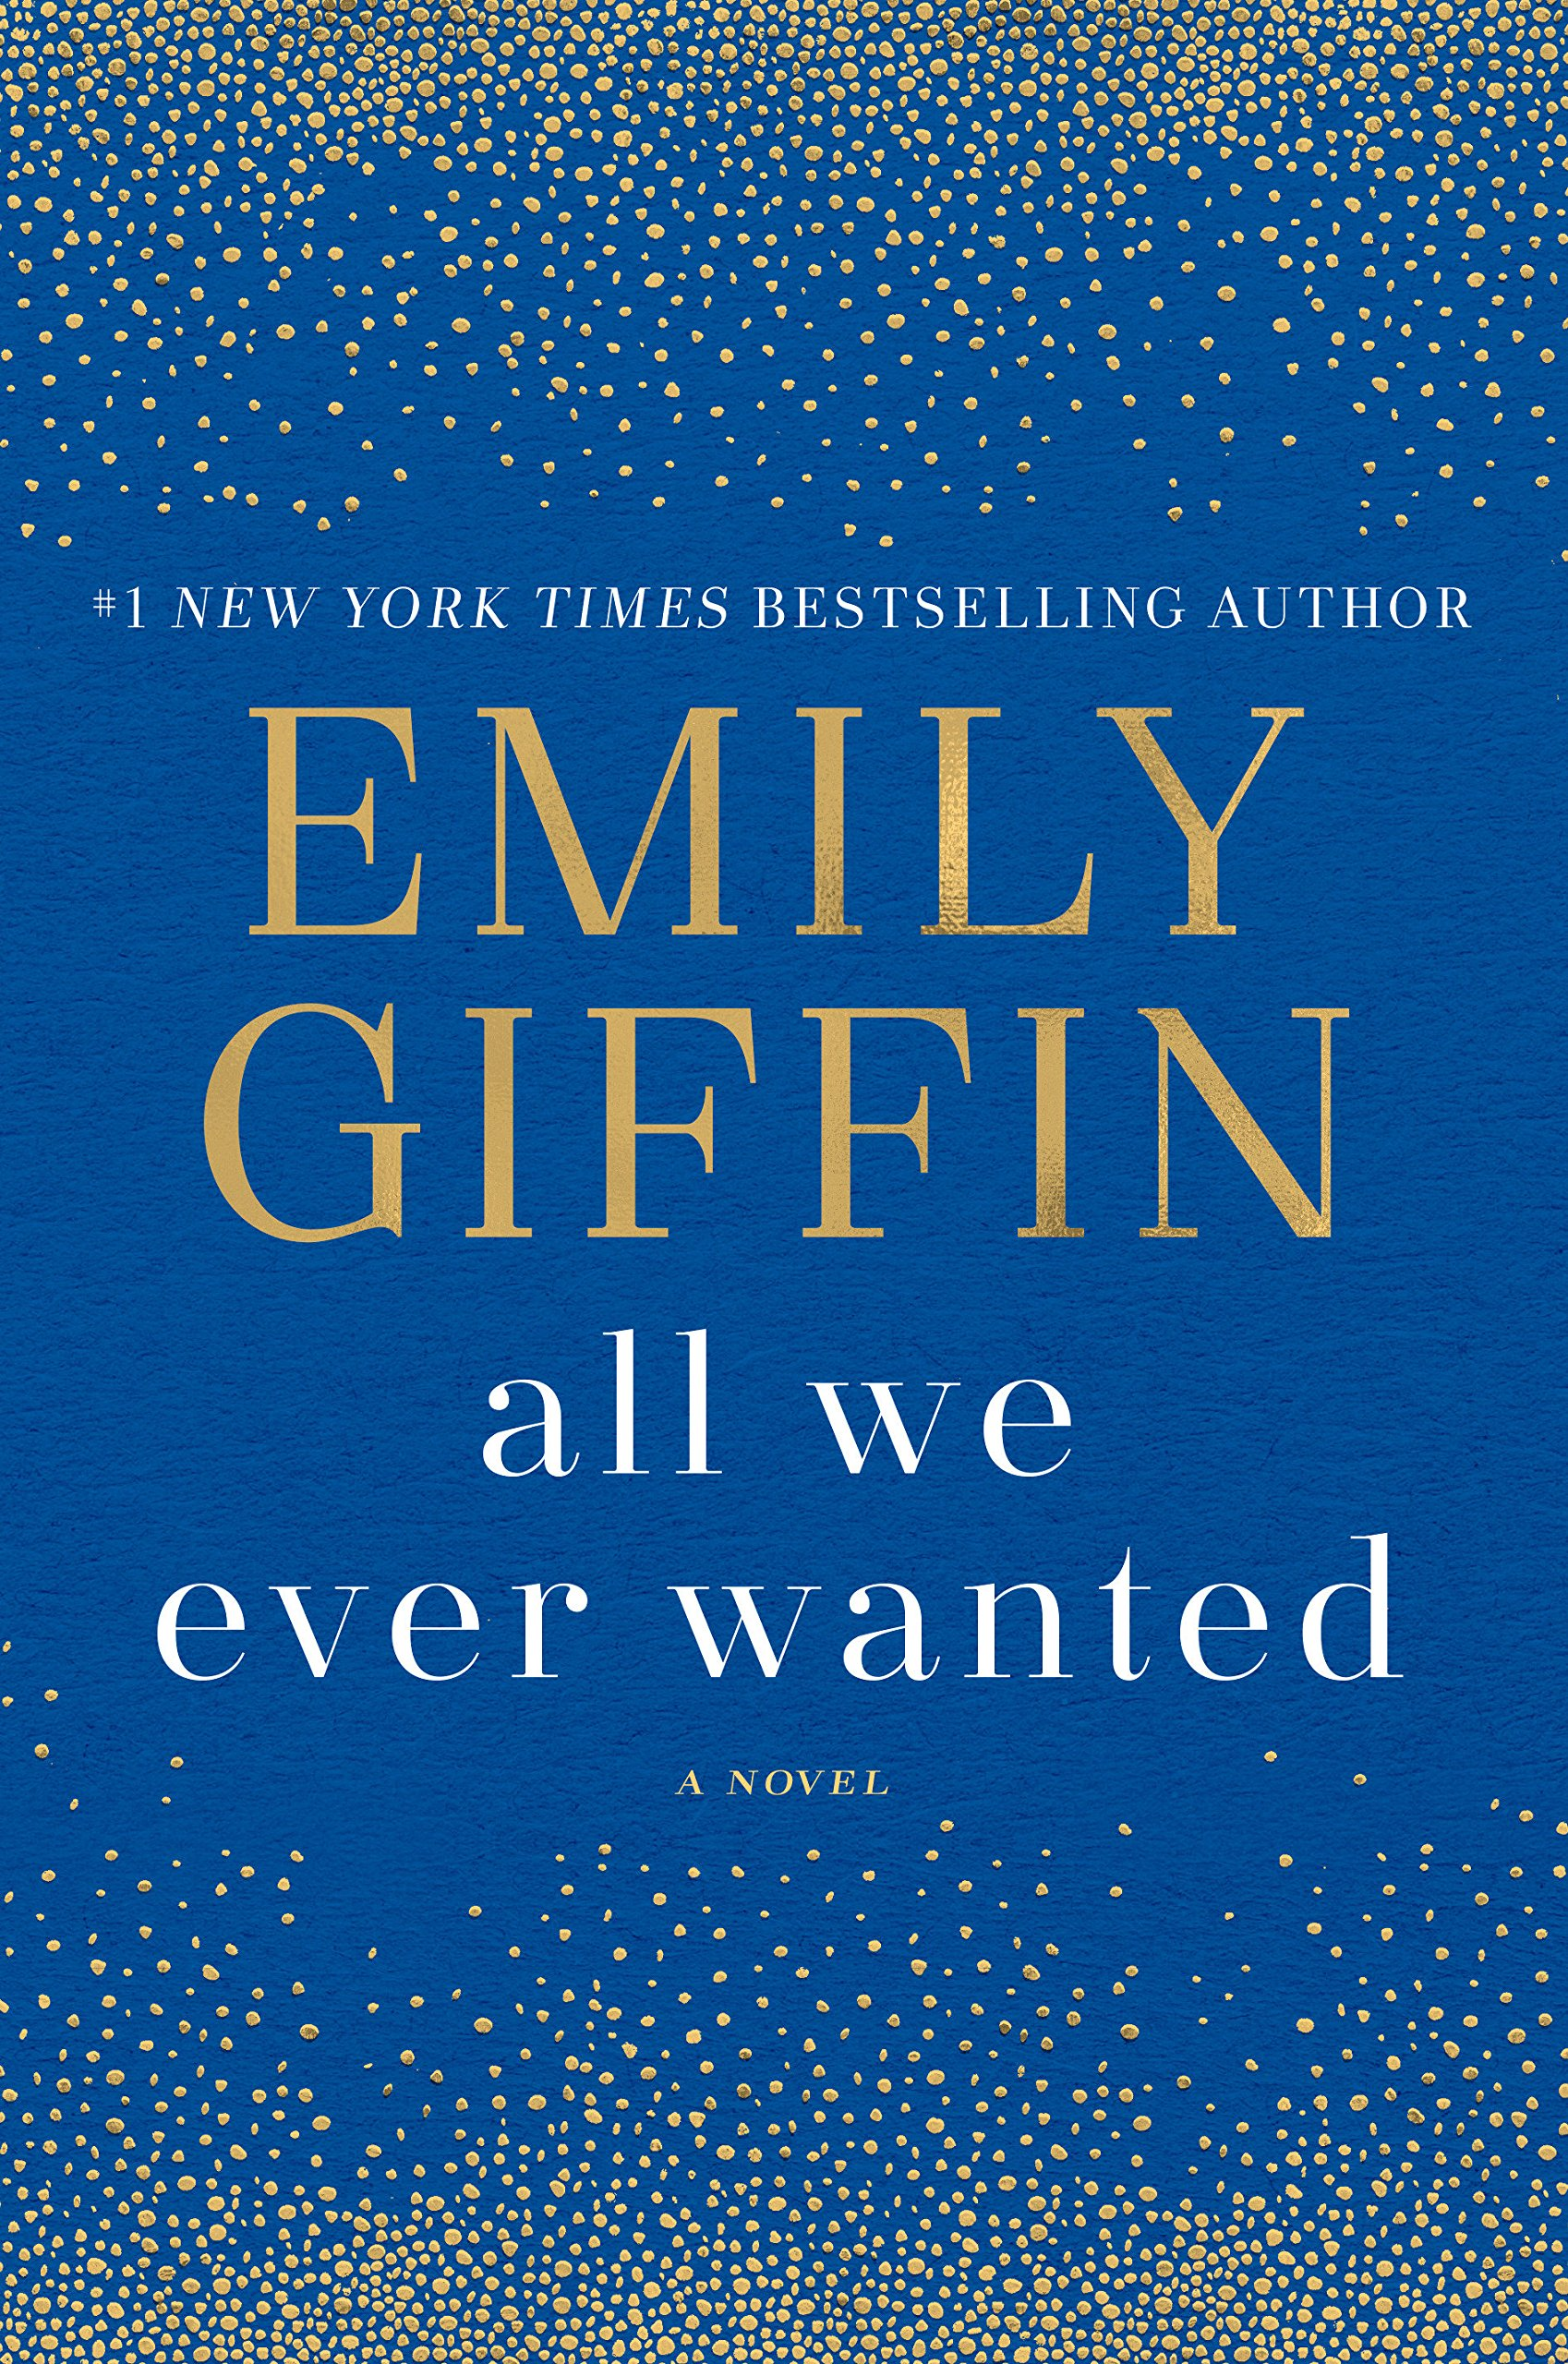 All We Ever Wanted: A Novel: Emily Giffin: 9780399178924: Amazon.com: Books